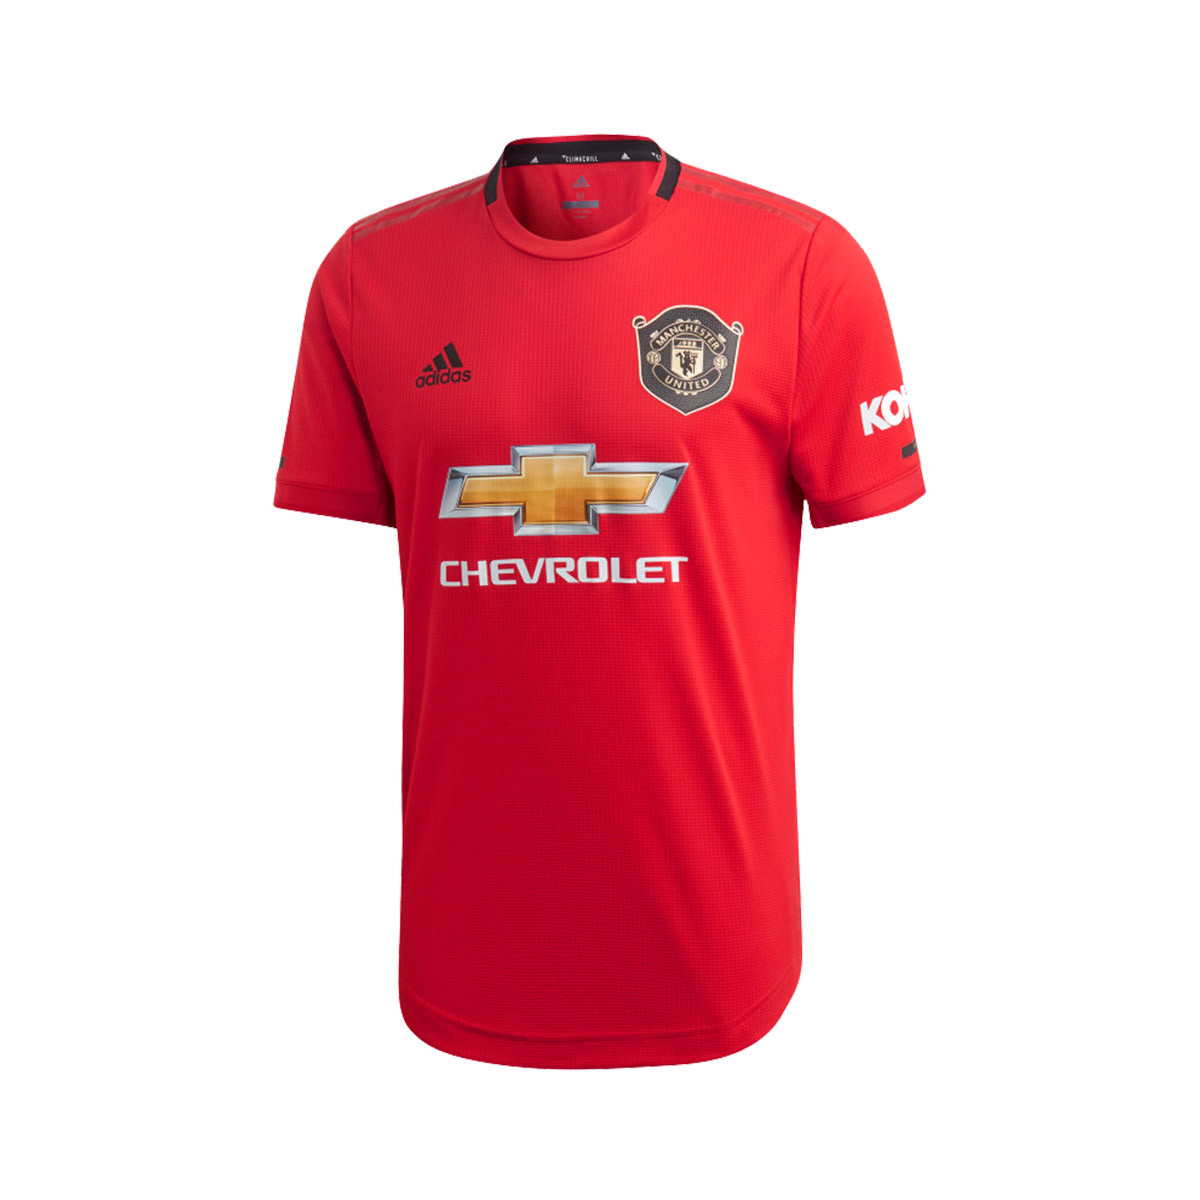 Jersey Adidas Manchester United Fc Authentic 2019 2020 Home Real Red Football Store Futbol Emotion